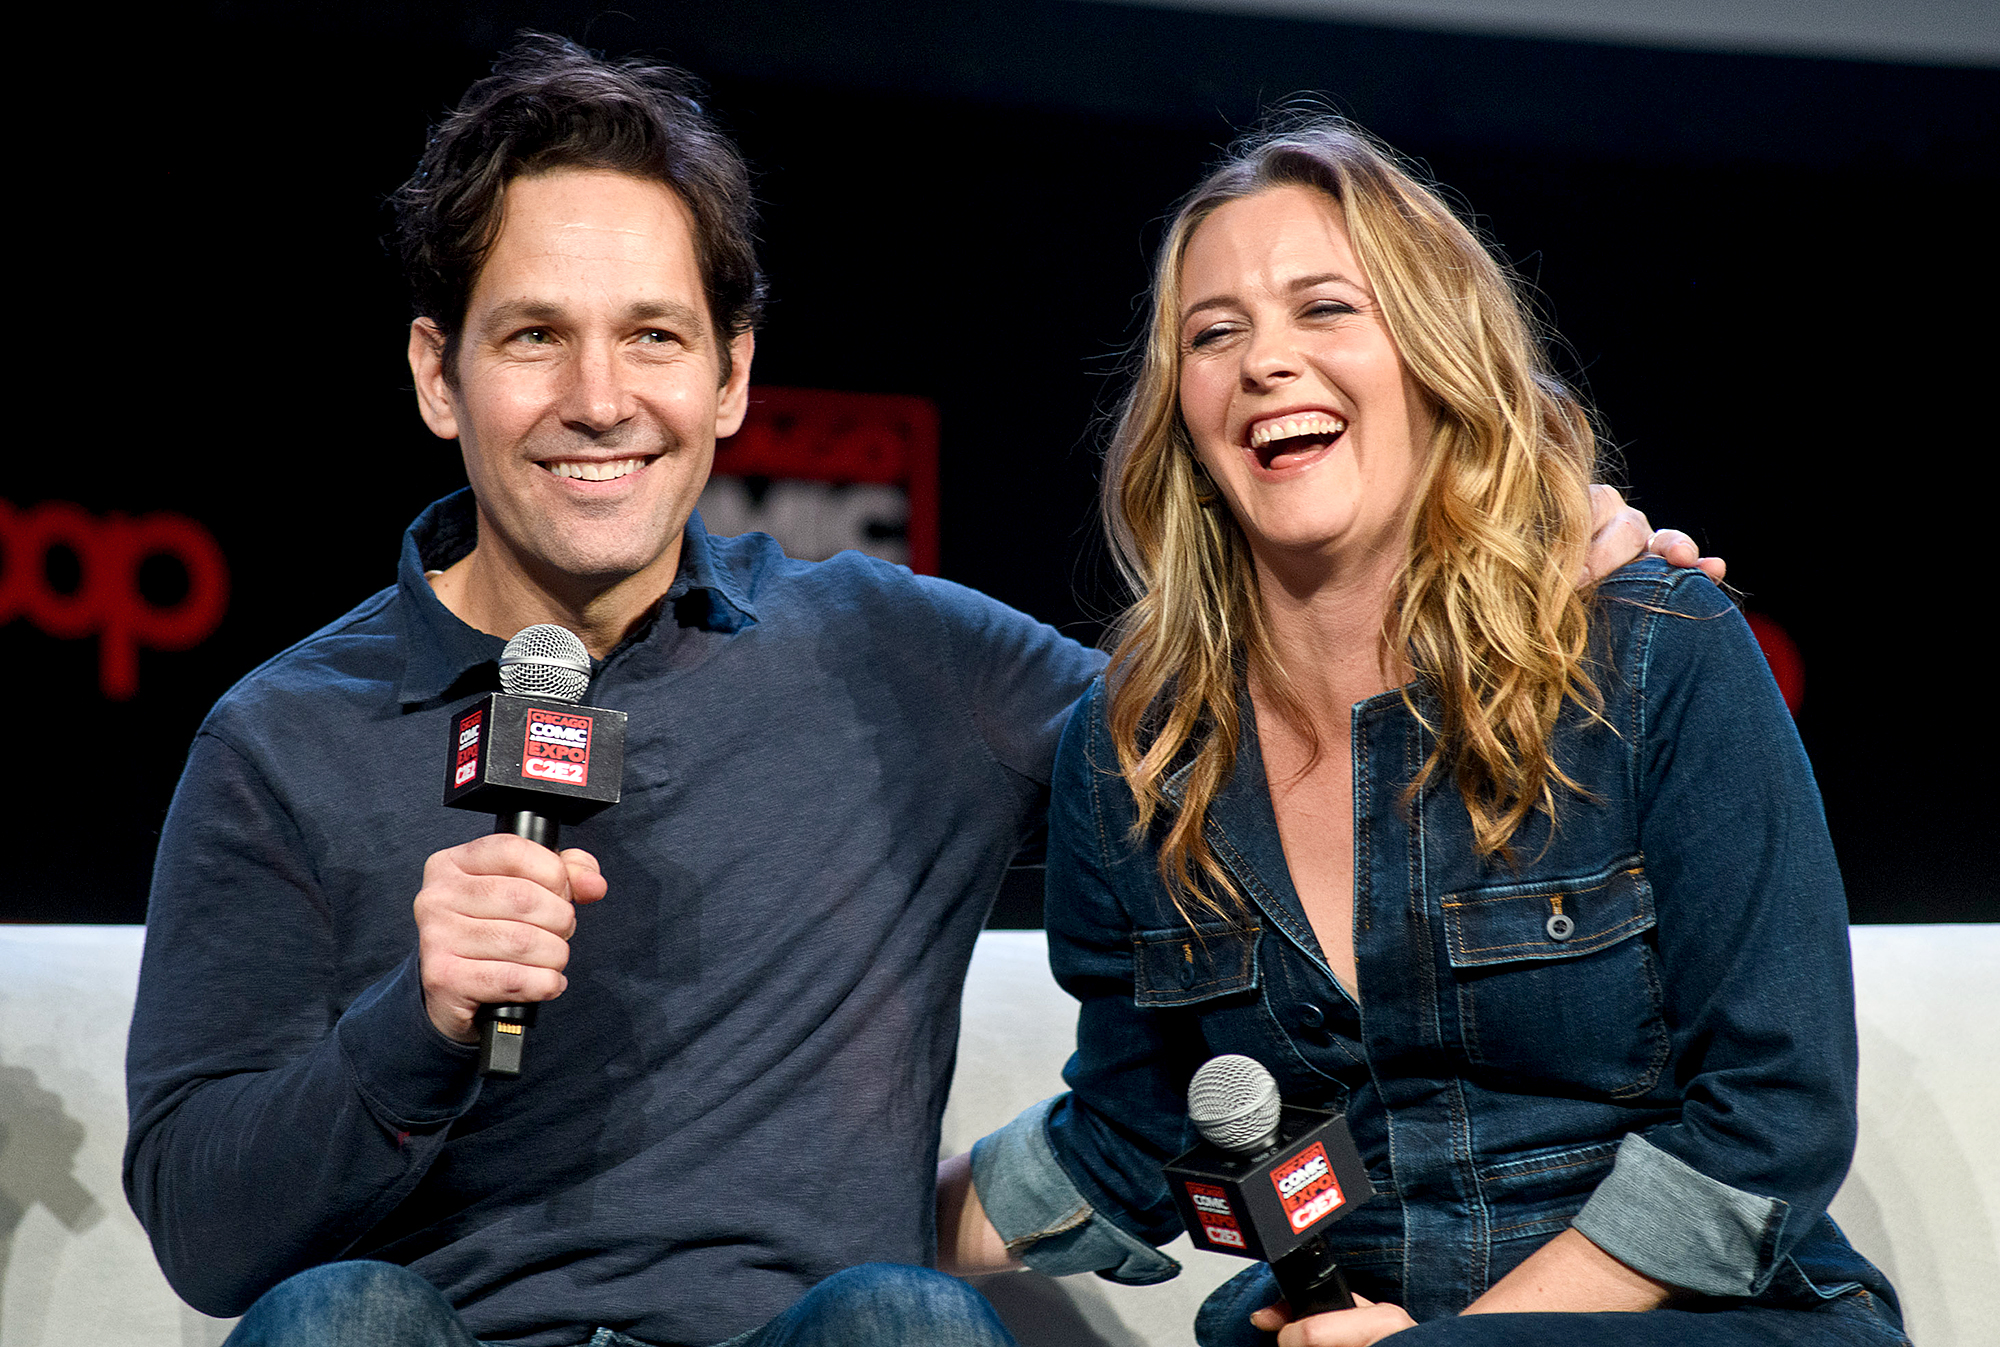 Paul-Rudd-youthful-skin - Paul Rudd and Alicia Silverstone attend C2E2 Chicago Comic and Entertainment Expo on March 23, 2019 in Chicago, Illinois.